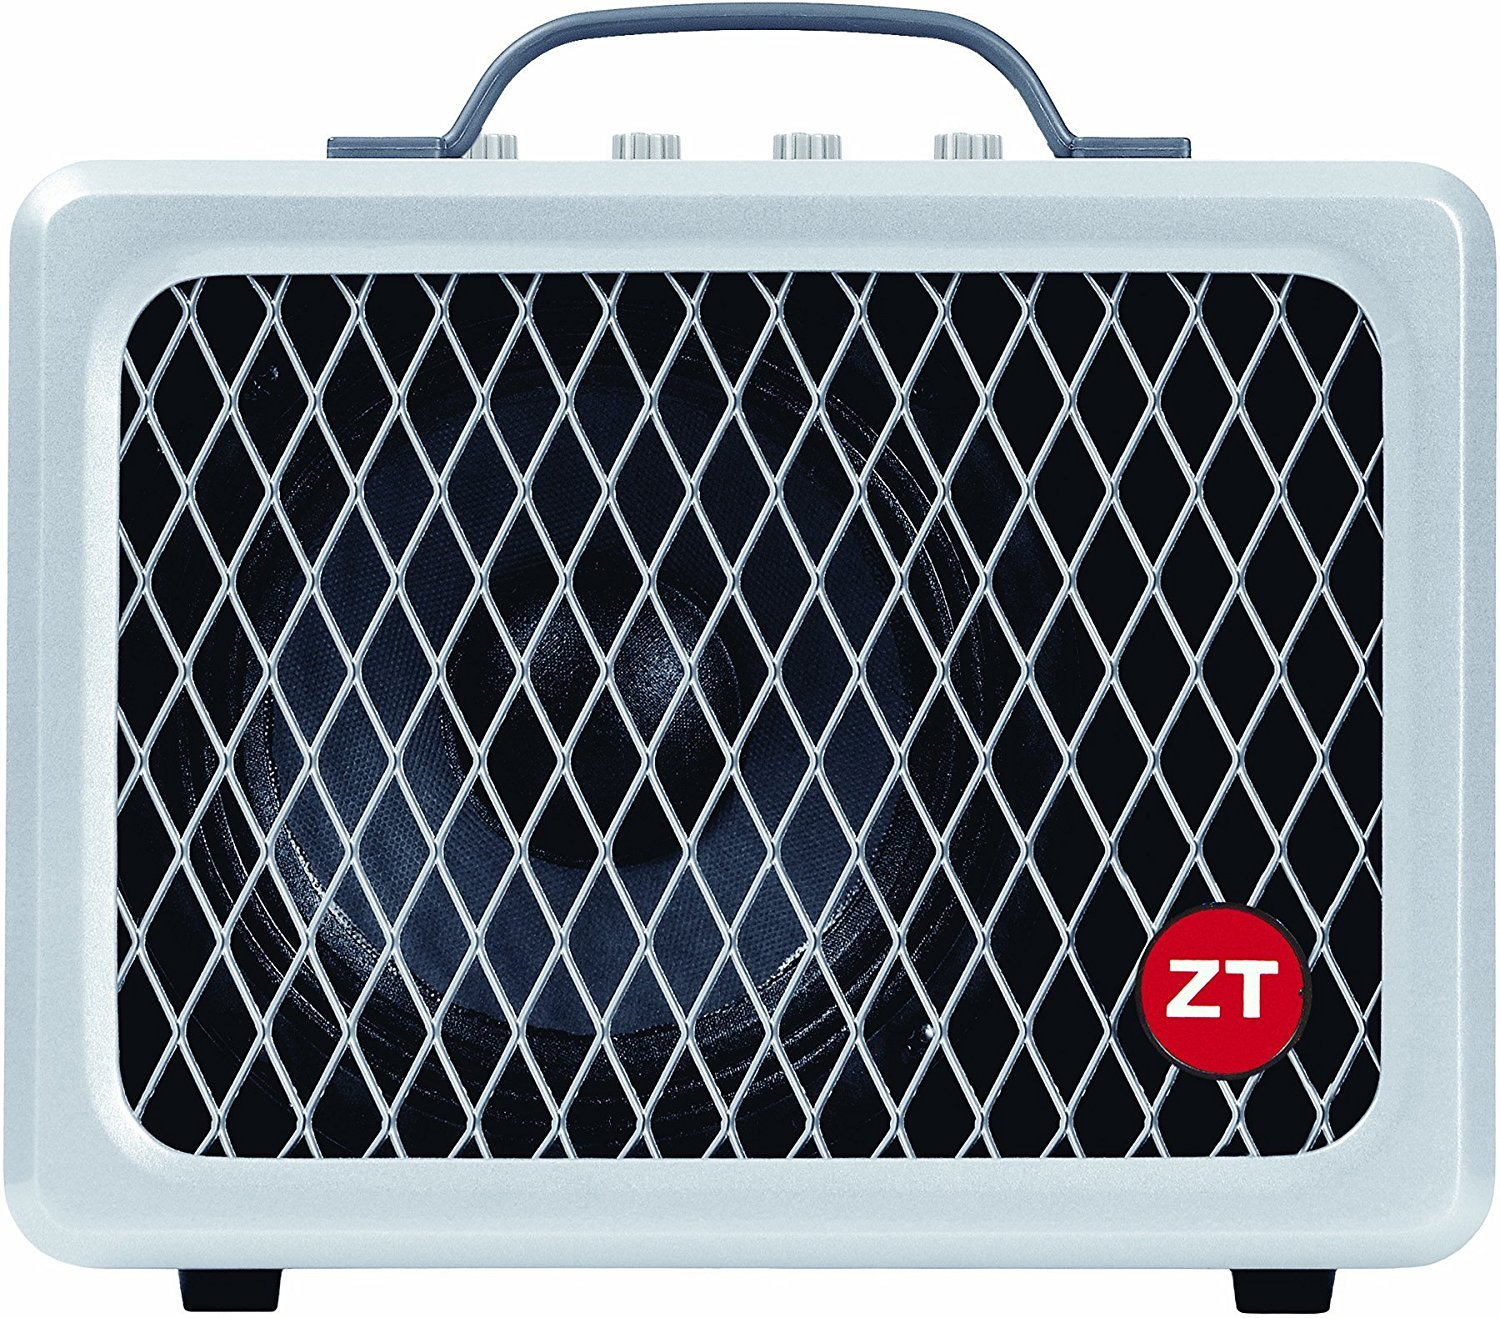 2. ZT Amplifiers Lunchbox 200-watt Class A/B Guitar Amplifier